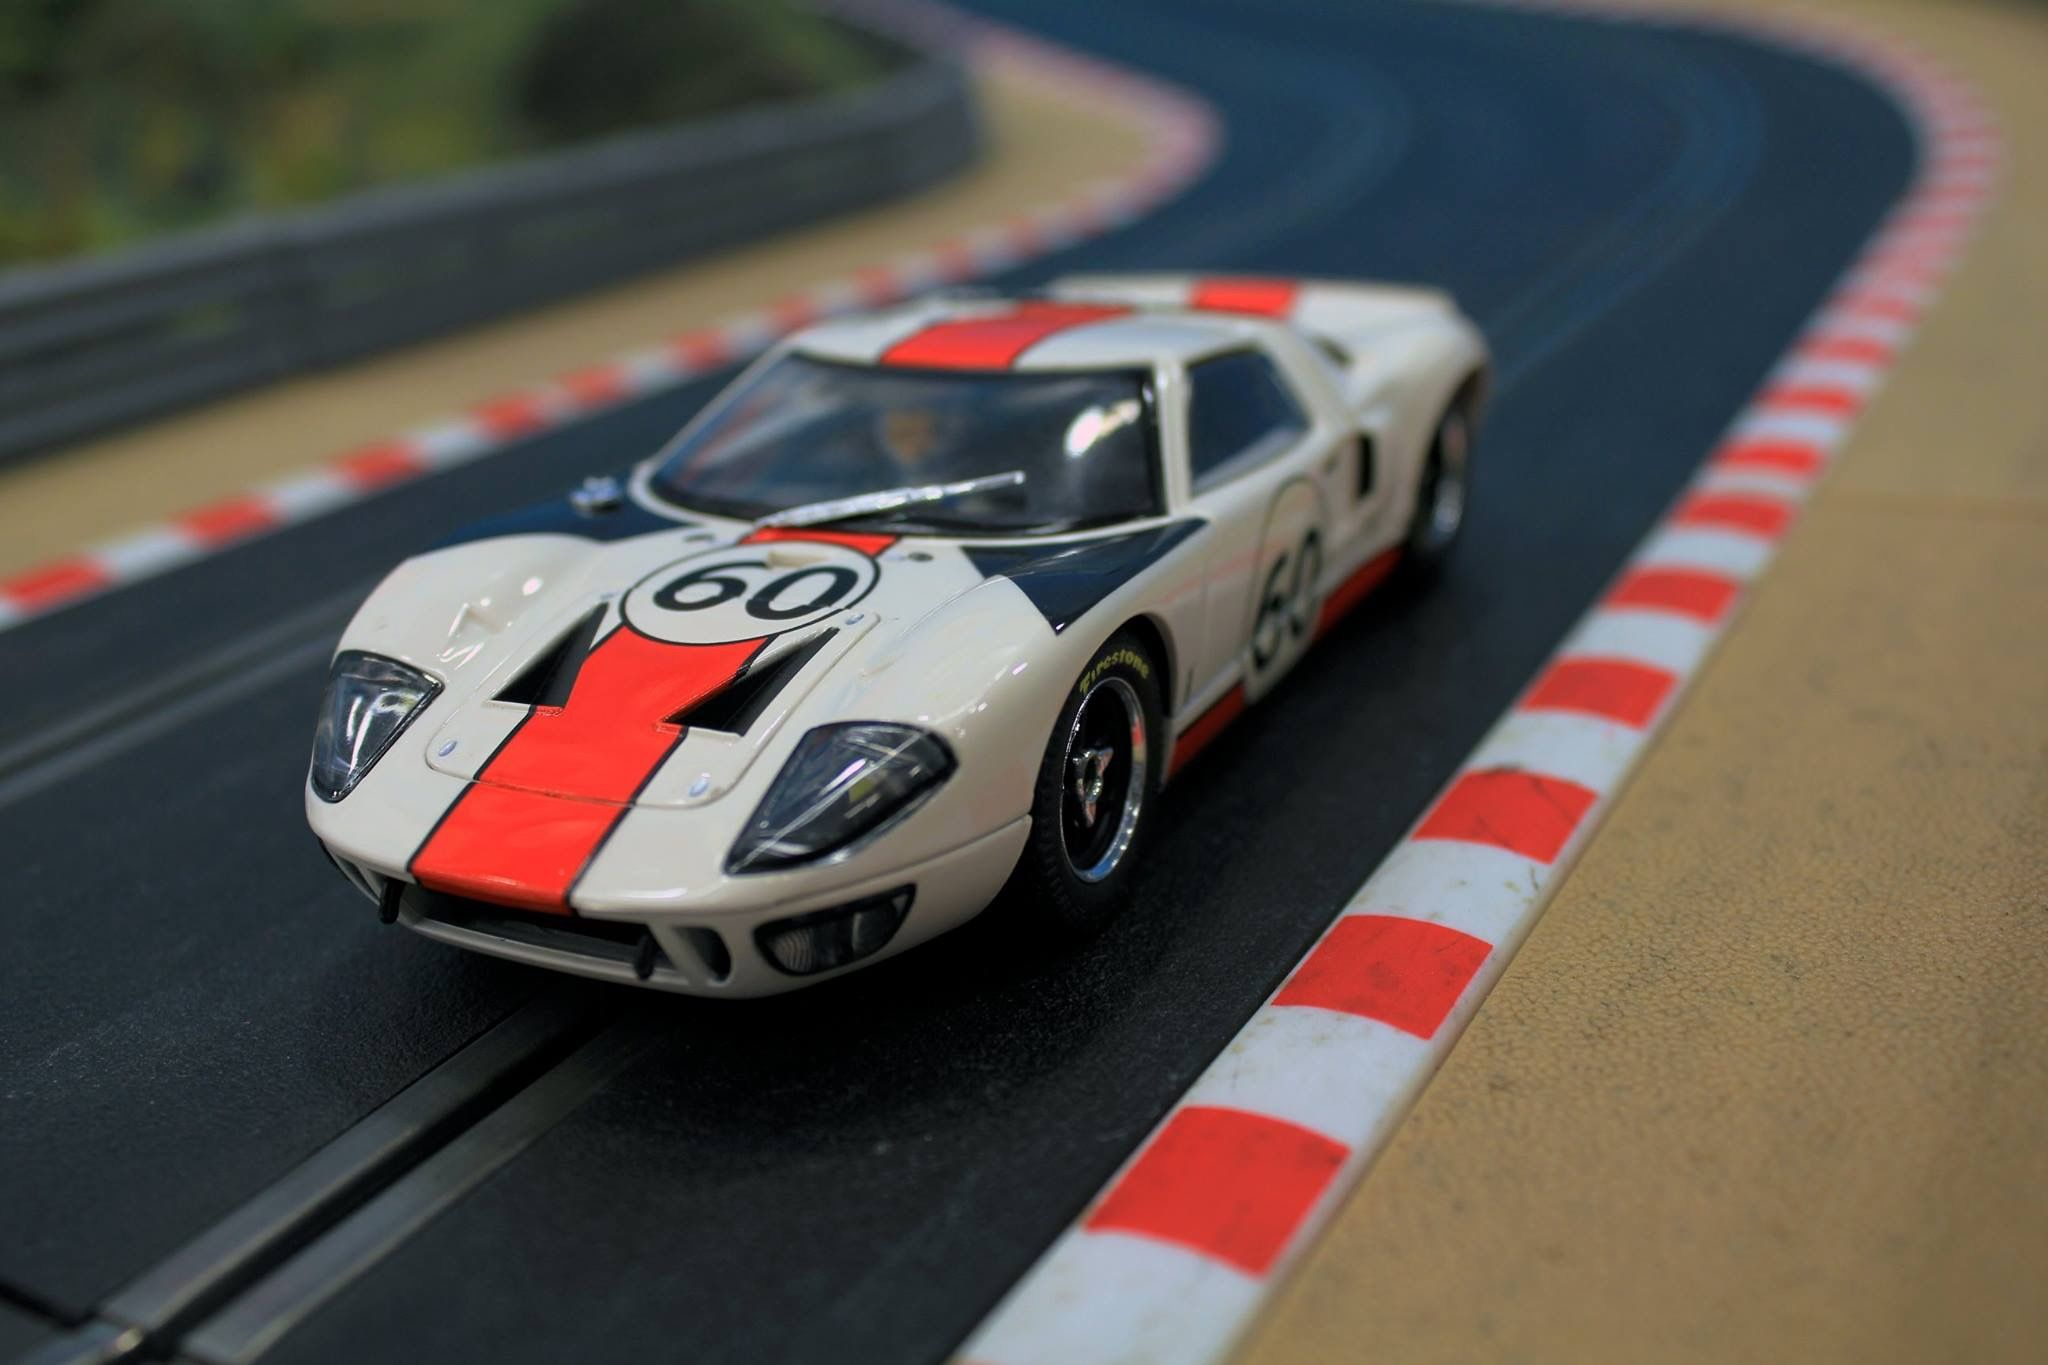 Scalextric Gt40 With Images Ho Slot Cars Slot Car Racing Slot Cars